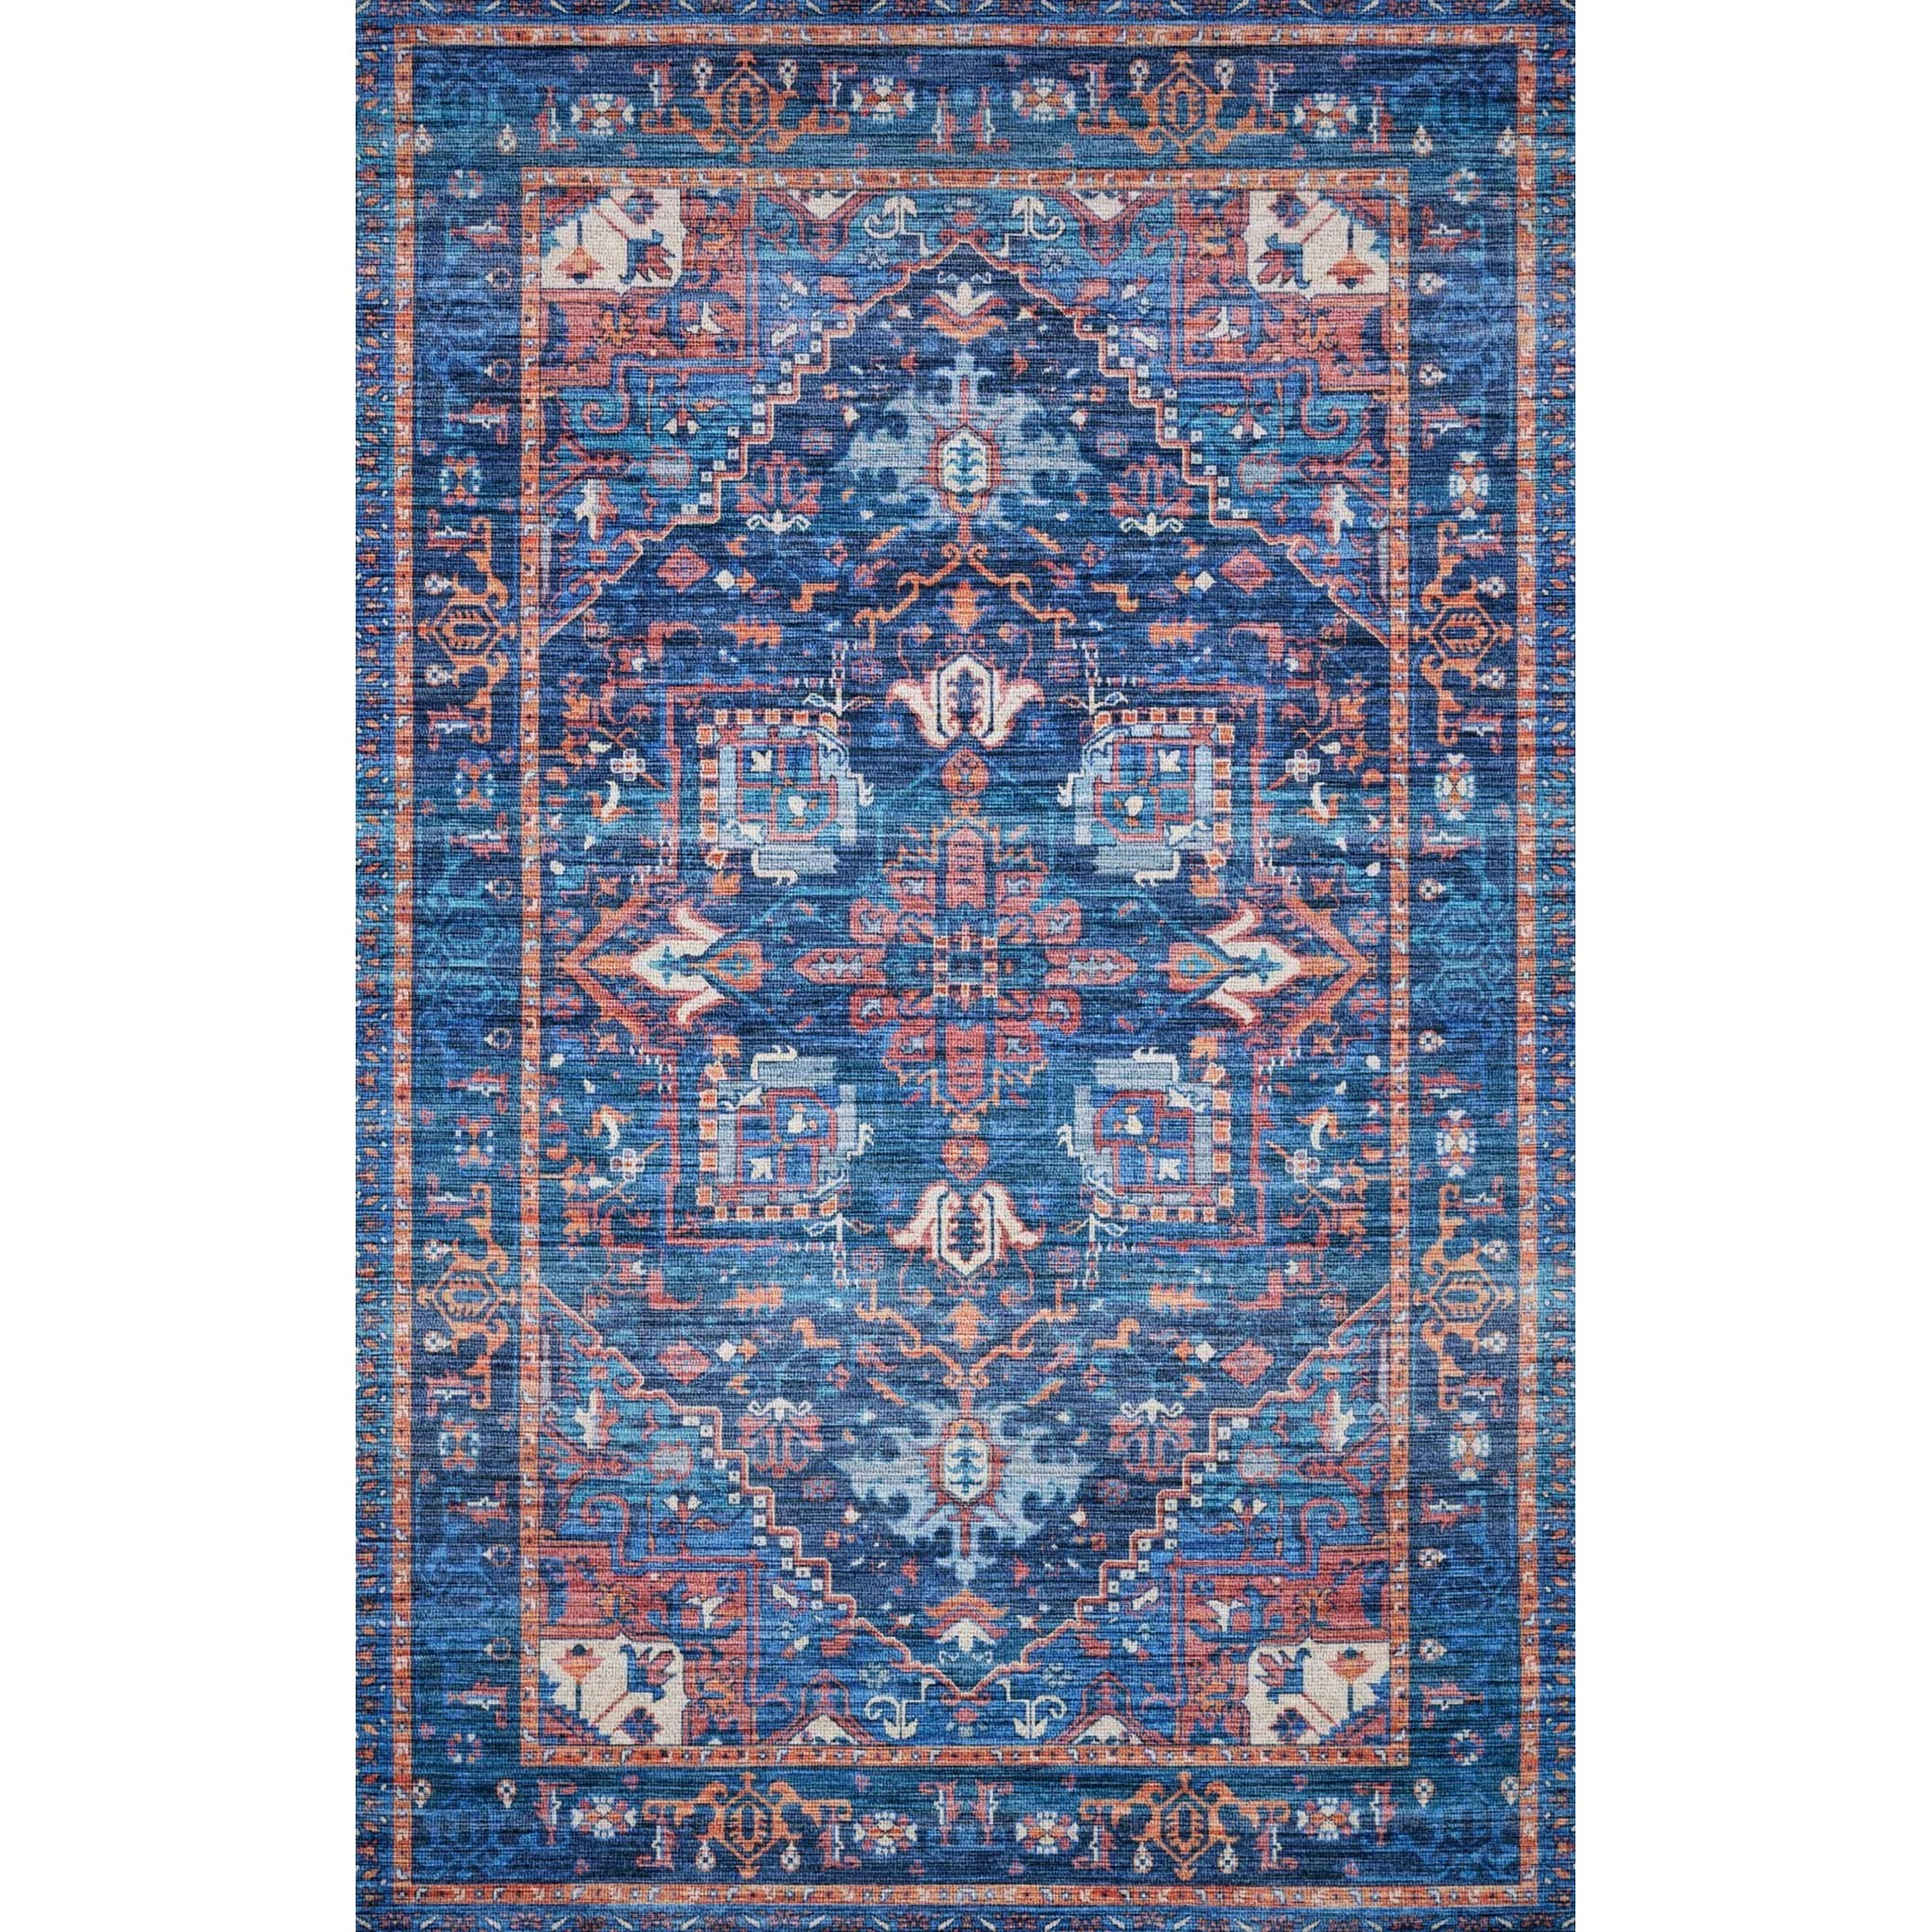 """Cielo-Loloi X Justina Blakeney Collection 2'-3"""" x 4'-0"""" Rug by Loloi Rugs at Virginia Furniture Market"""